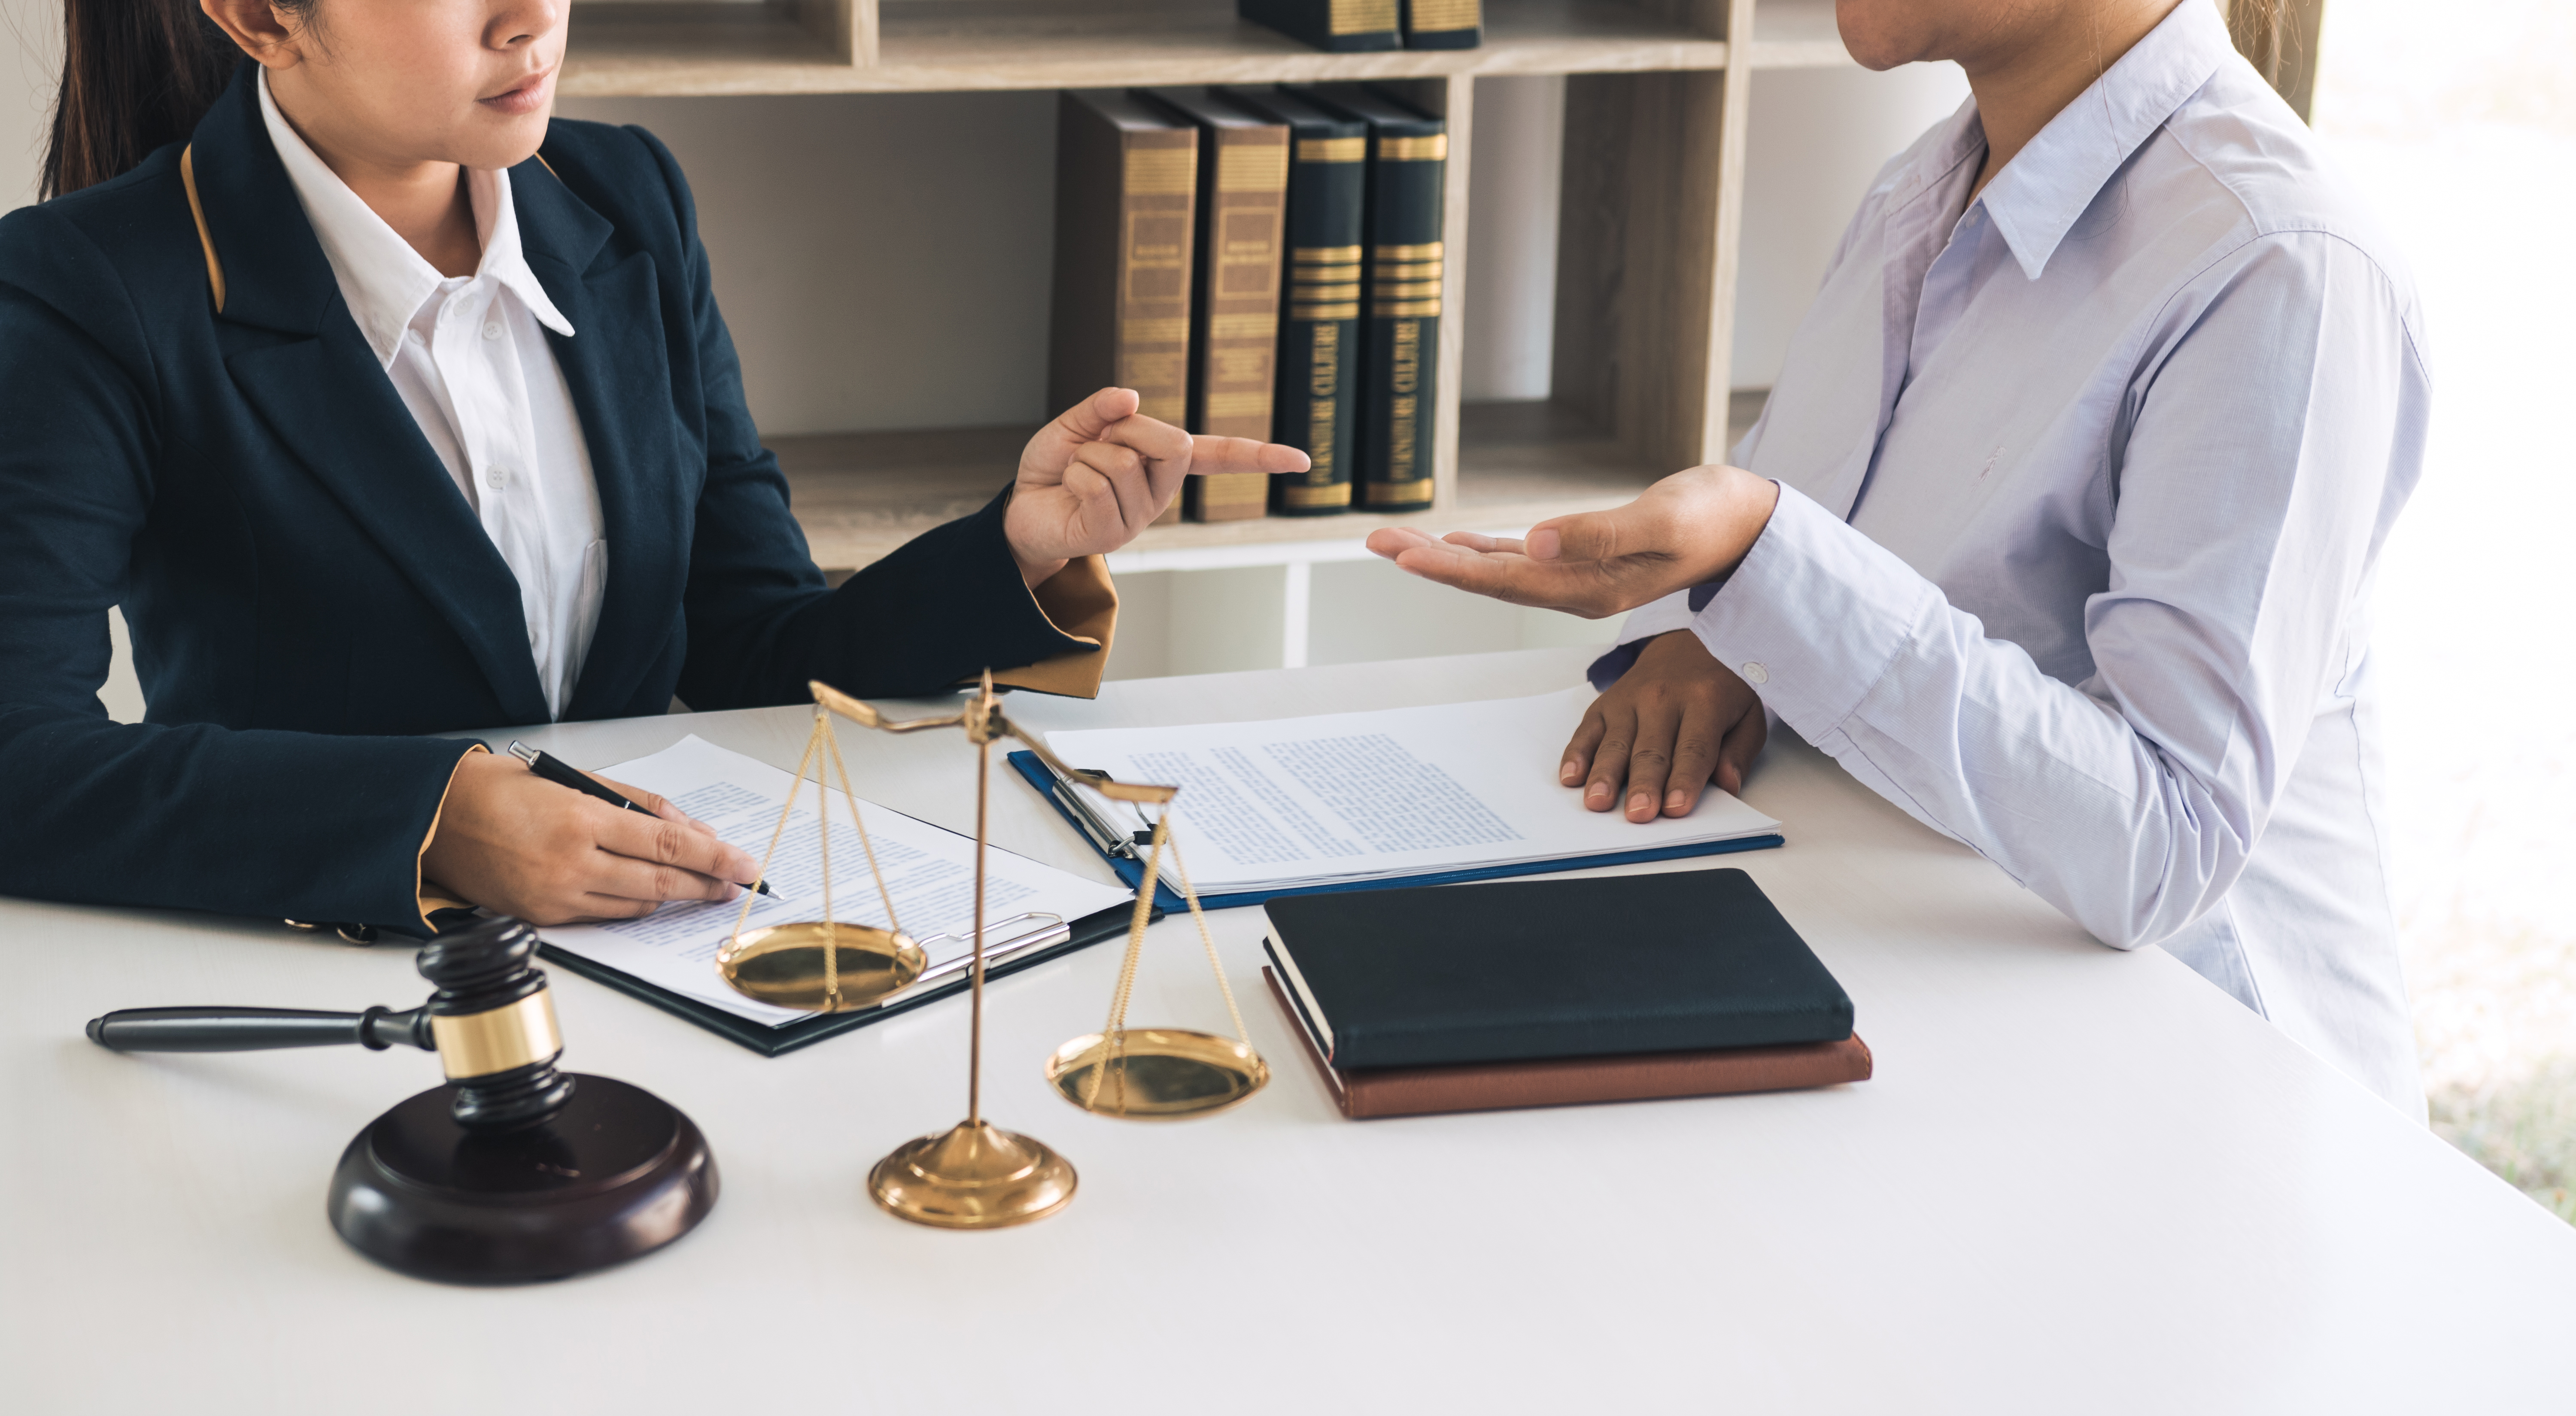 legal-advisor-is-explaining-the-offense-under-the--Y5DQ2B7